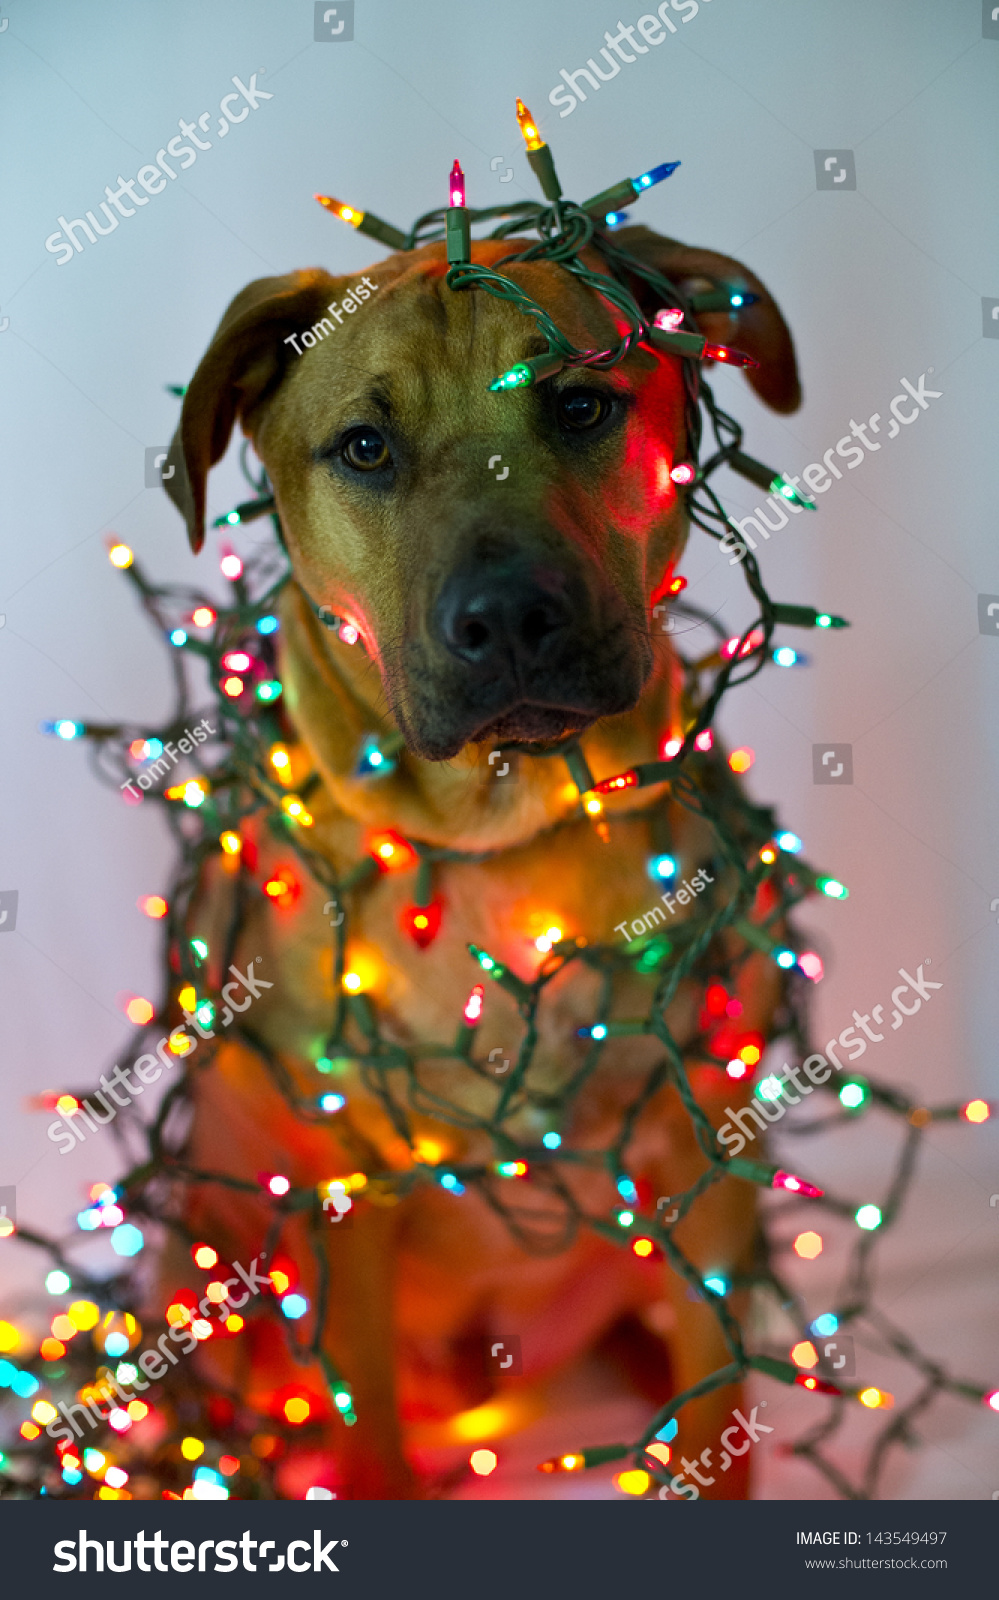 a dog is wrapped in christmas lights - Dog Christmas Lights